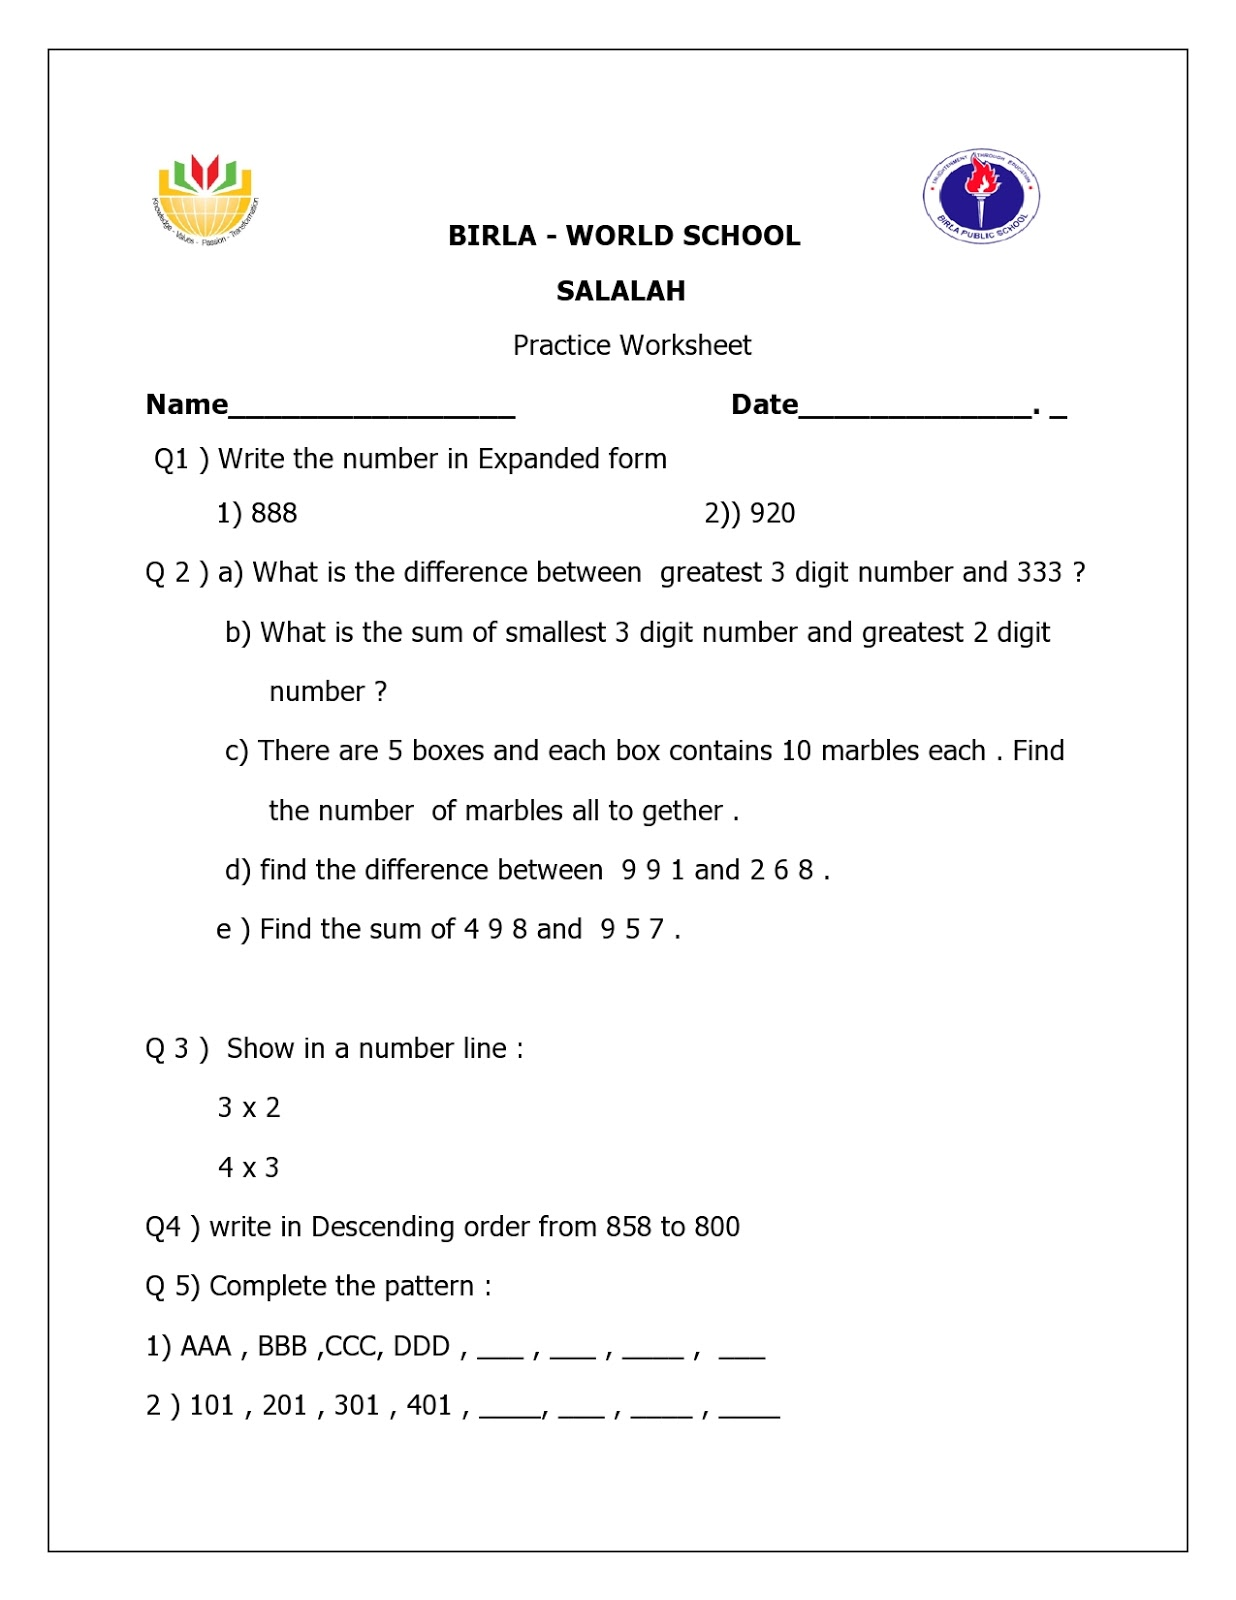 Birla World School Oman Homework For Grade 2b On 29 10 15